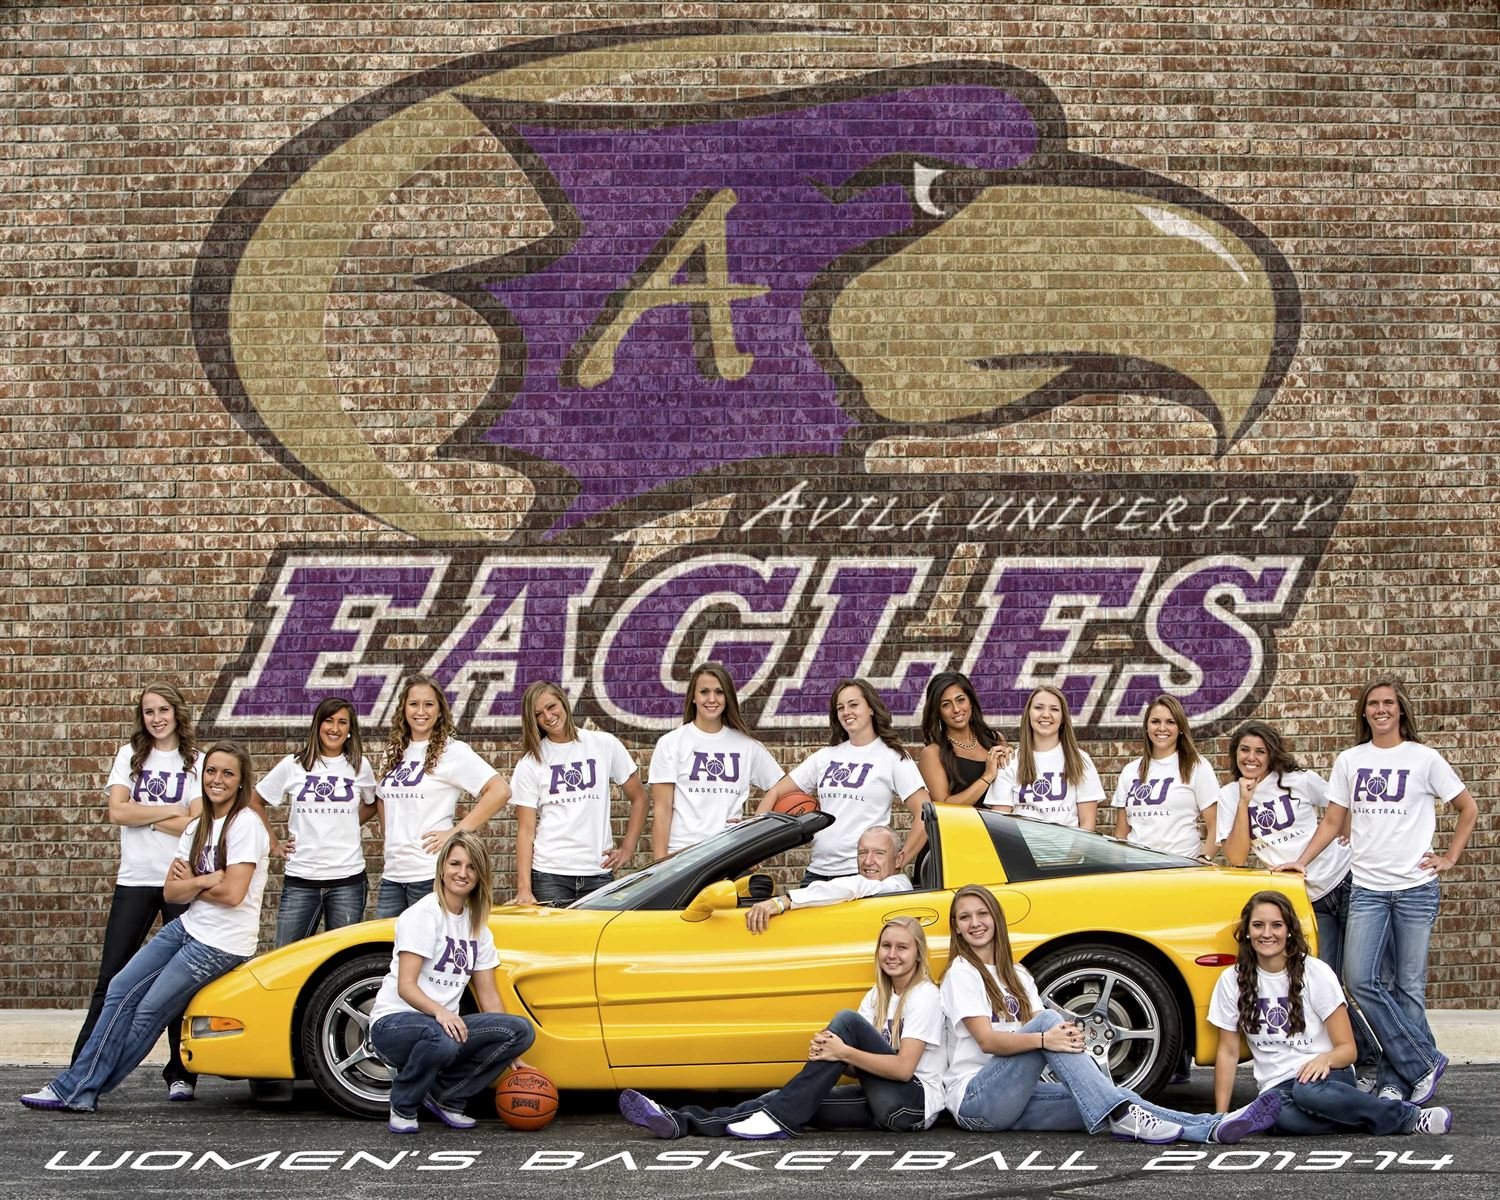 Avila University - Womens Varsity Basketball